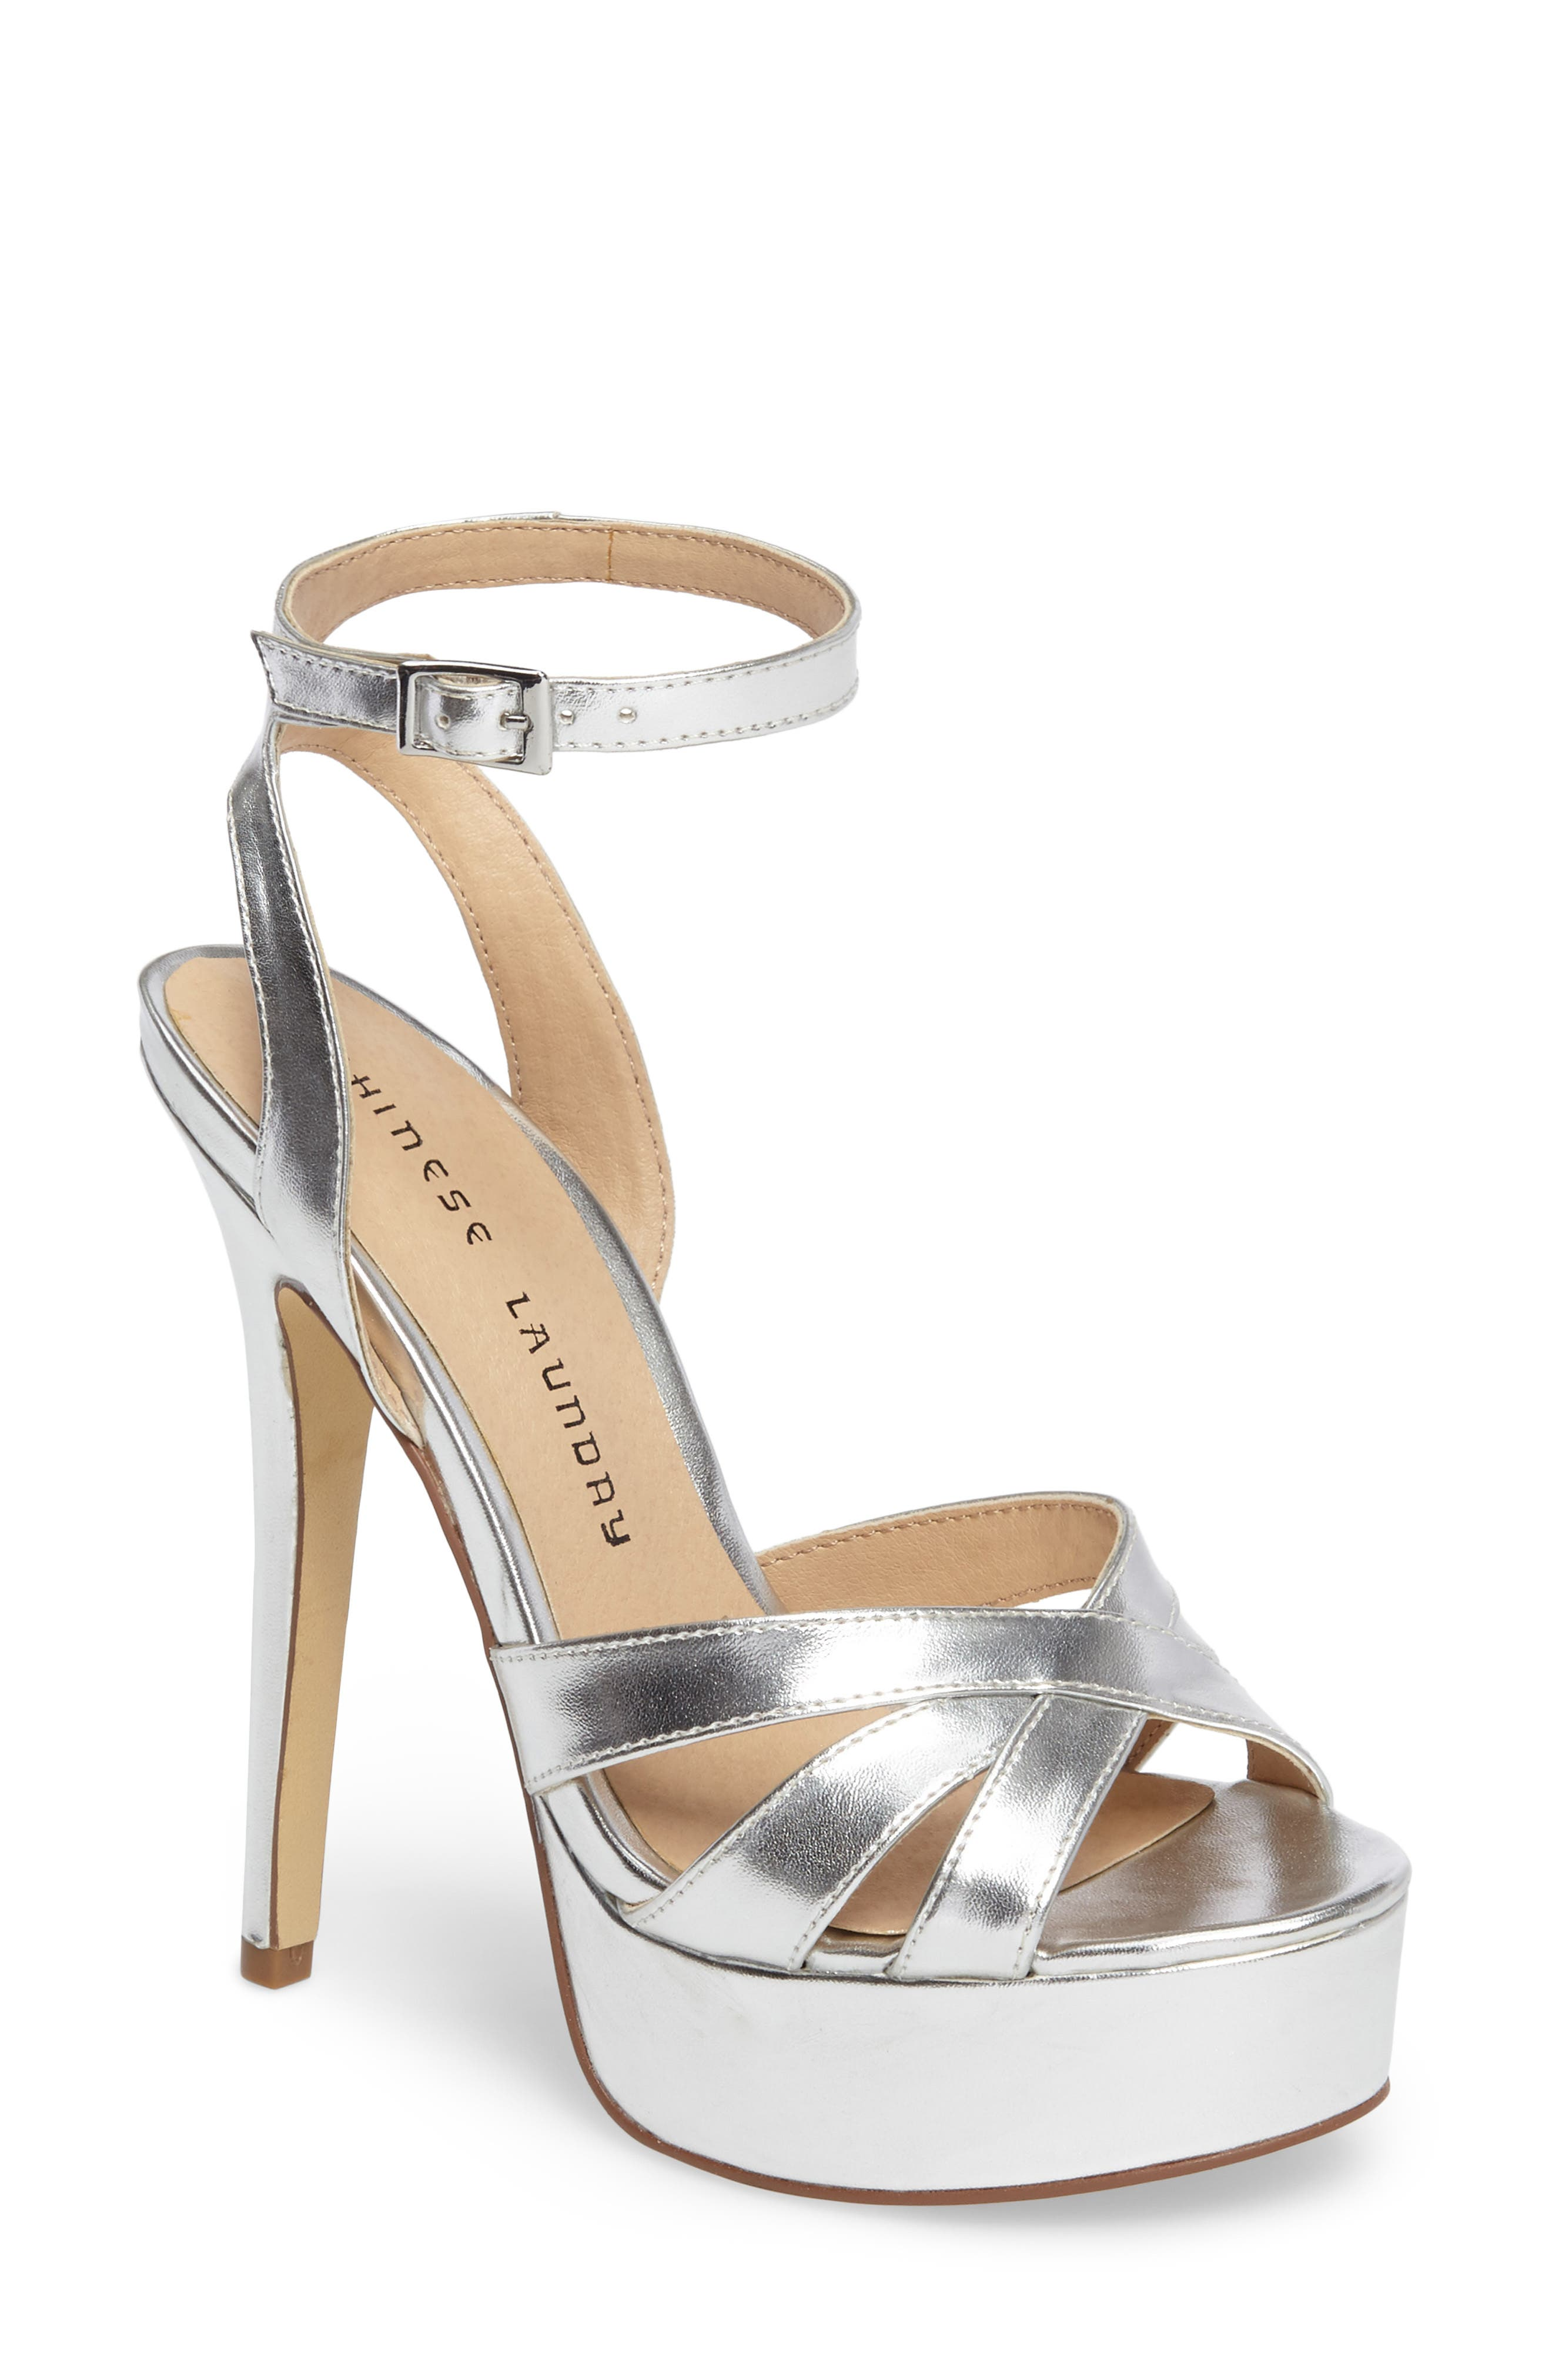 Alyssa Strappy Platform Sandal,                             Main thumbnail 1, color,                             040